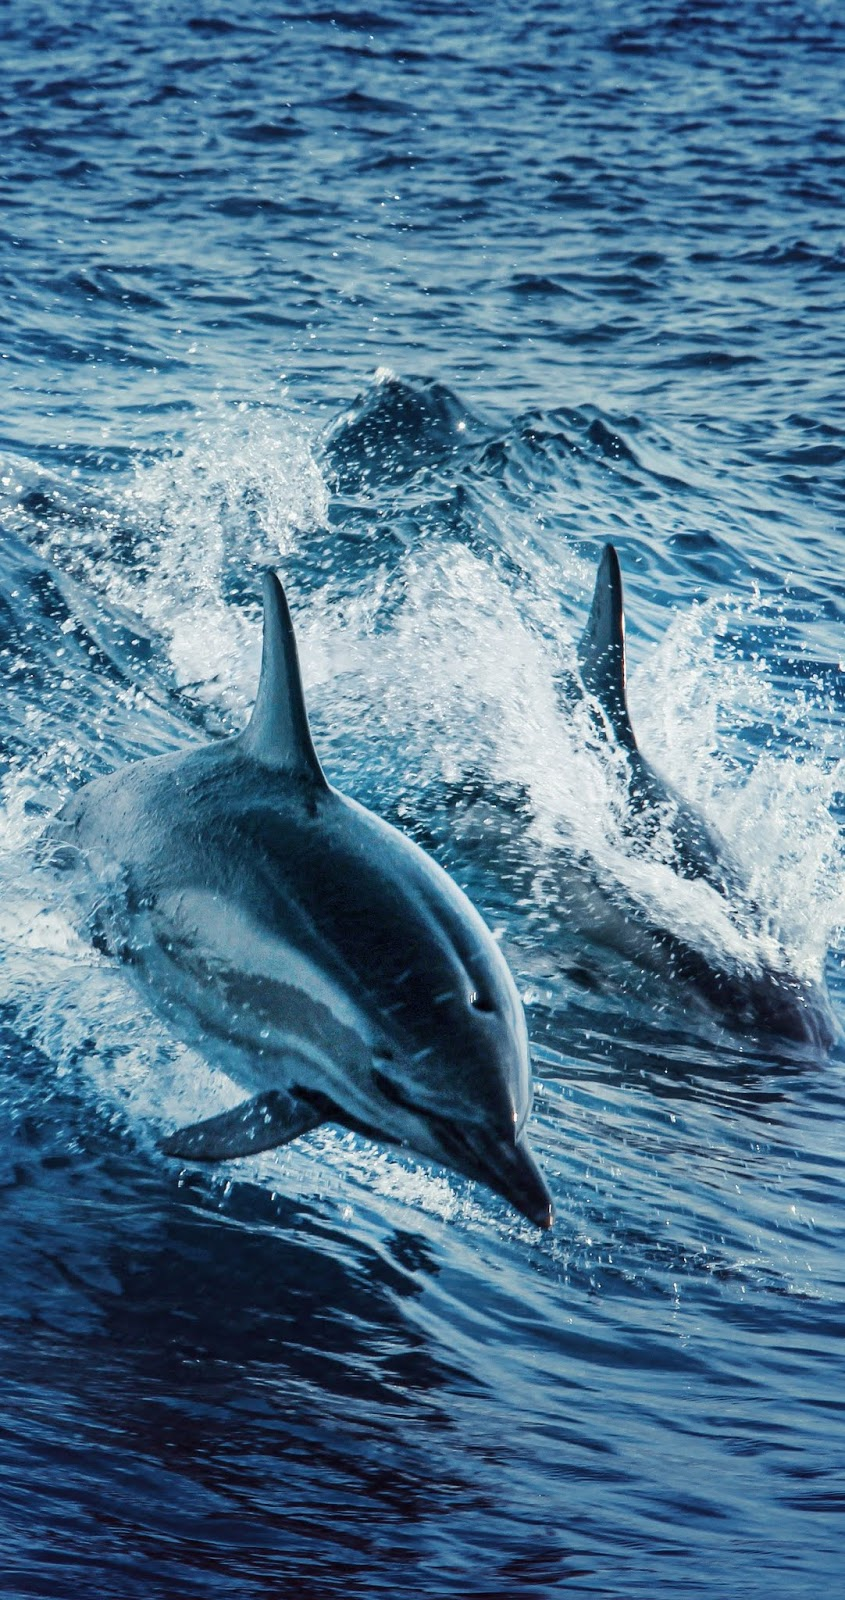 Amazing dolphins swimming.